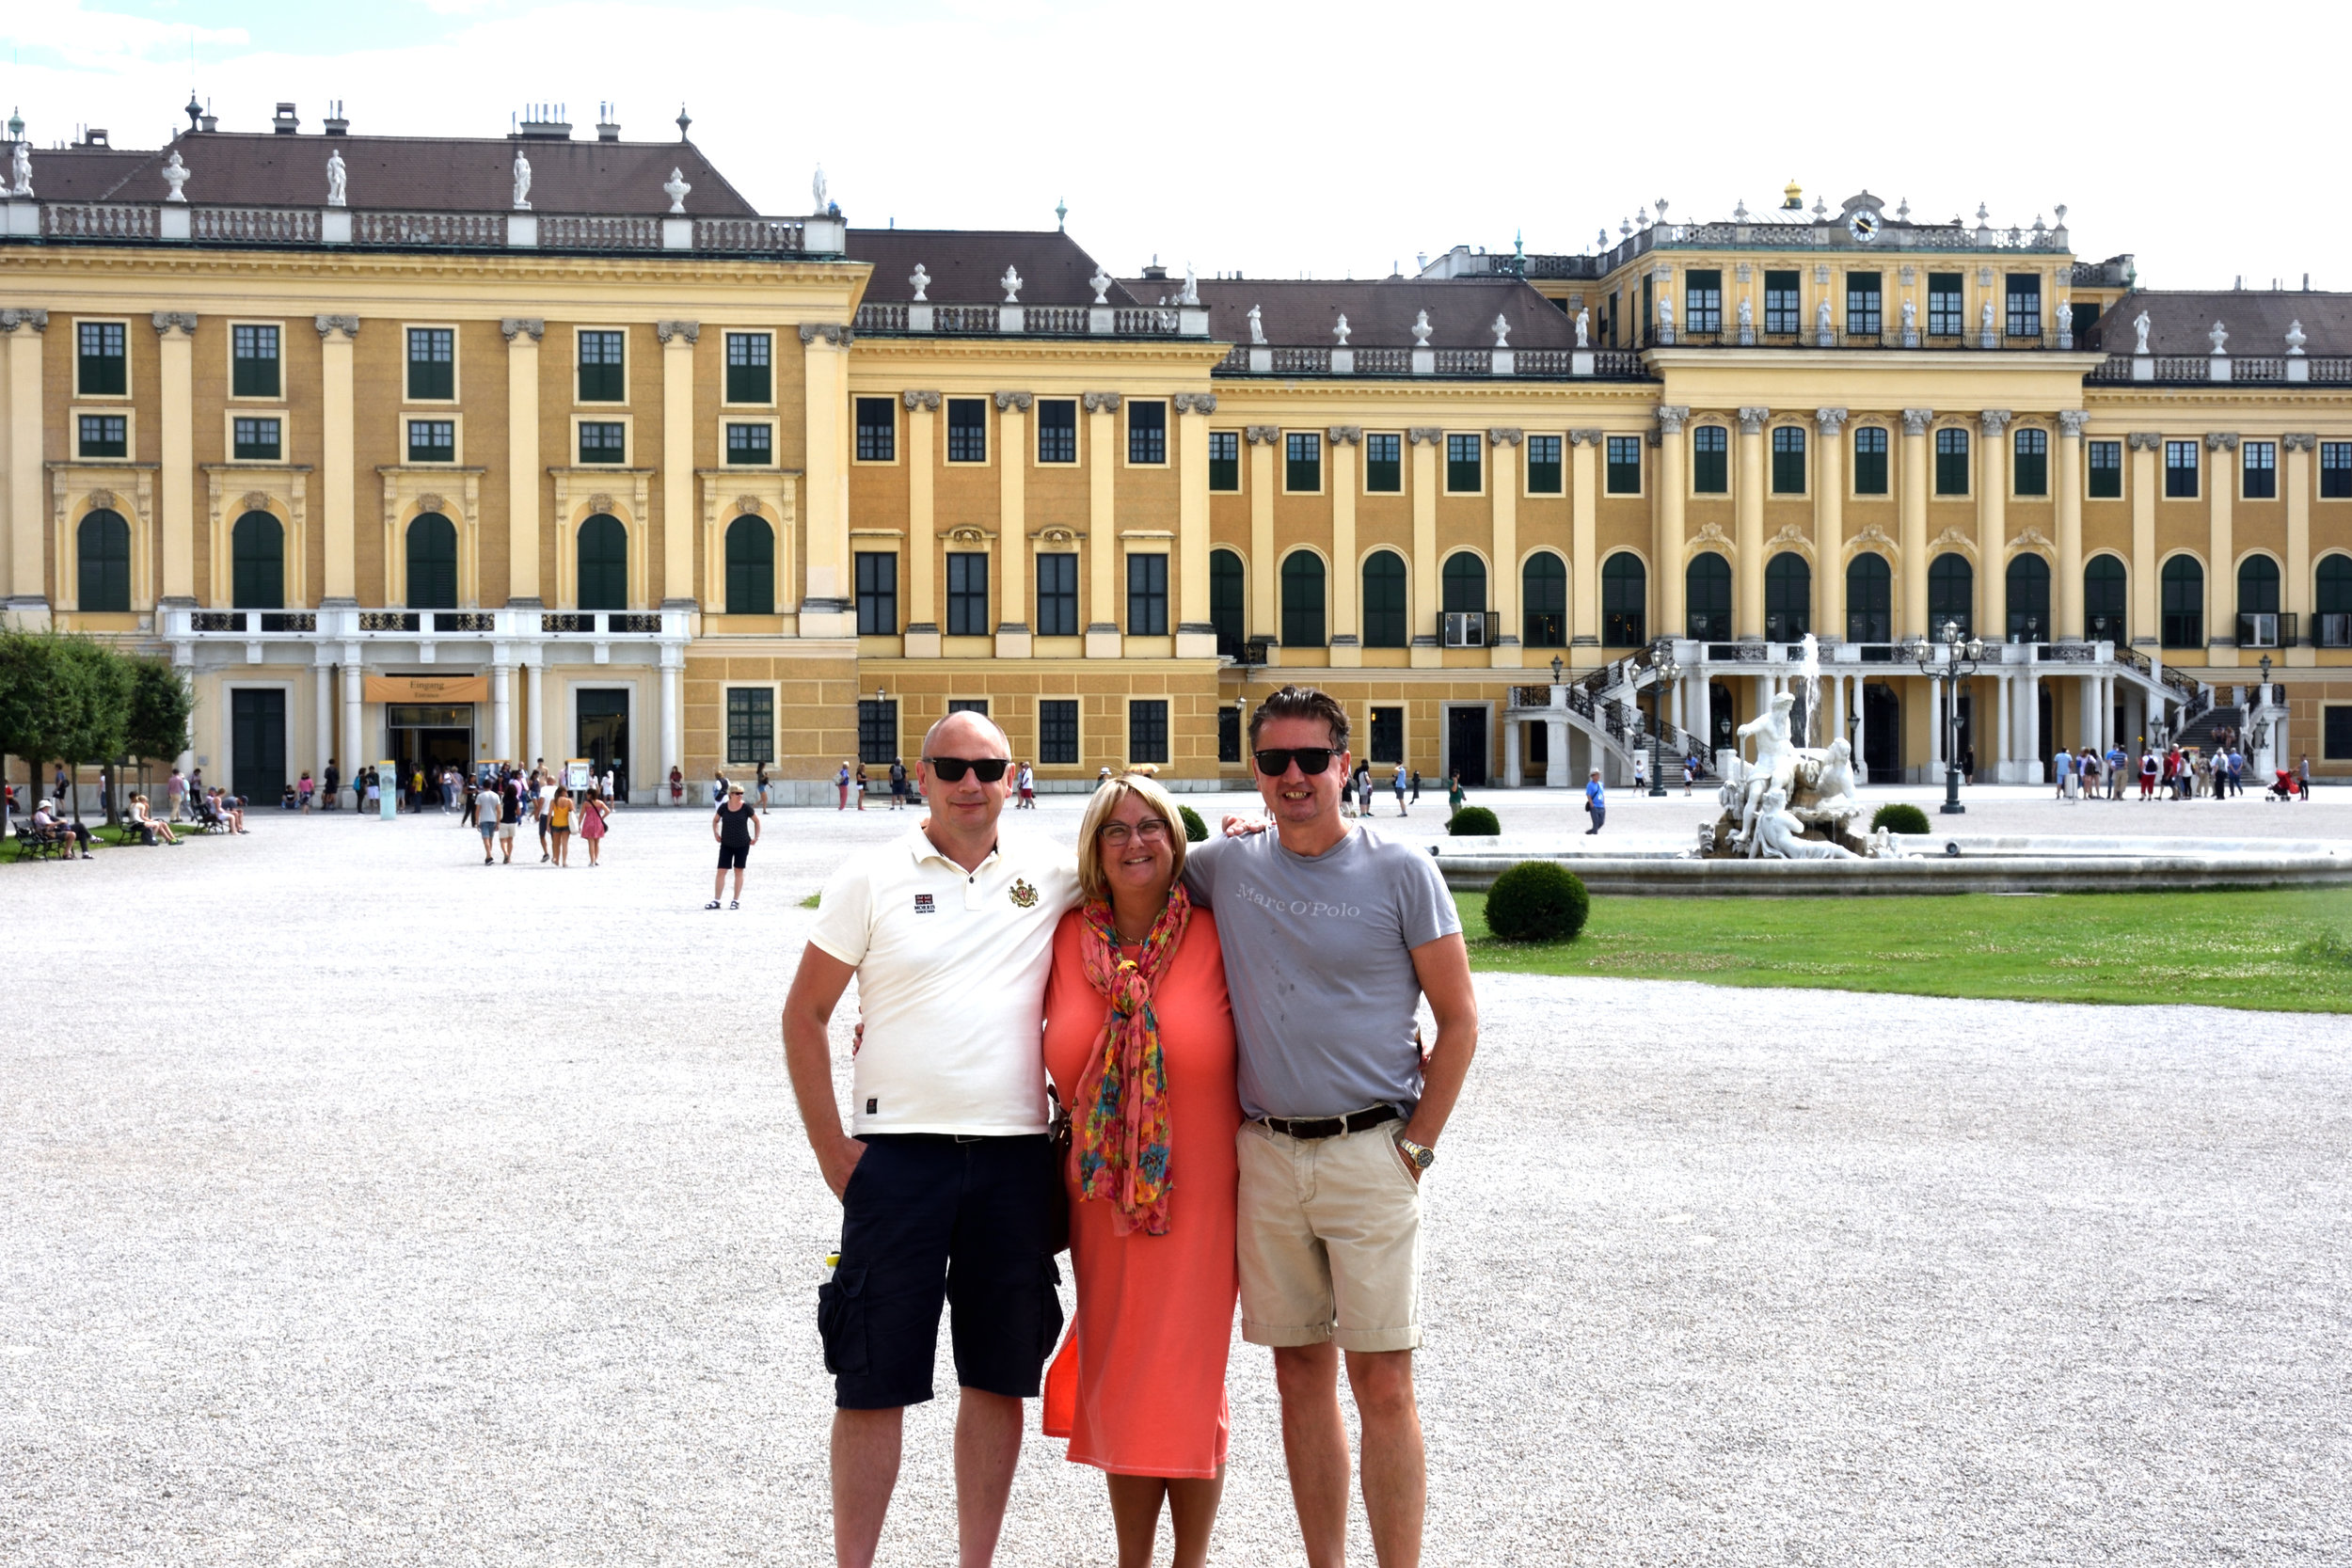 Stefan, Ullis & Bojan at Schönbrunn castle, Vienna July 2017